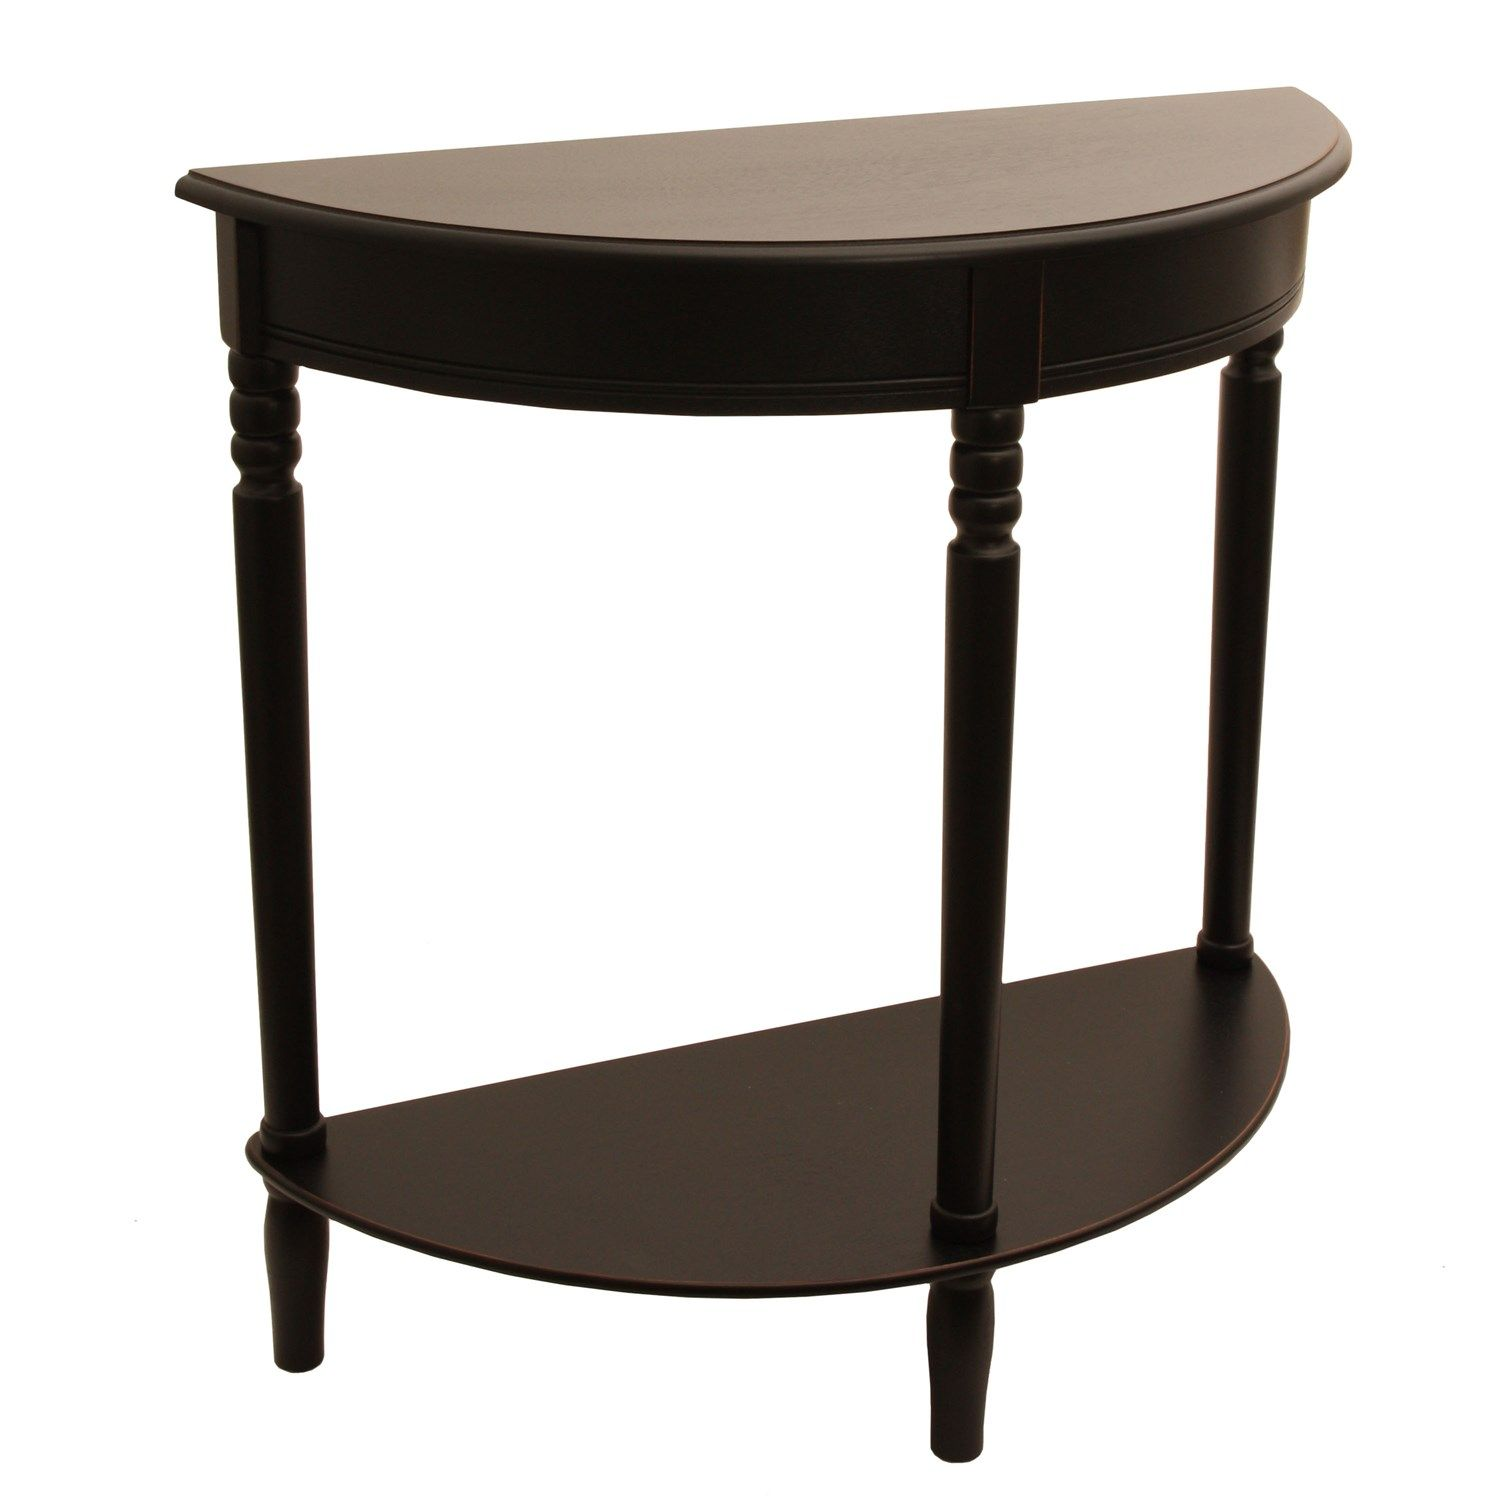 awesome half round accent table designer ideas bakers rack circle shabby chic lamps small space furniture solutions beech bedside kids lamp brass hairpin legs inch wide console